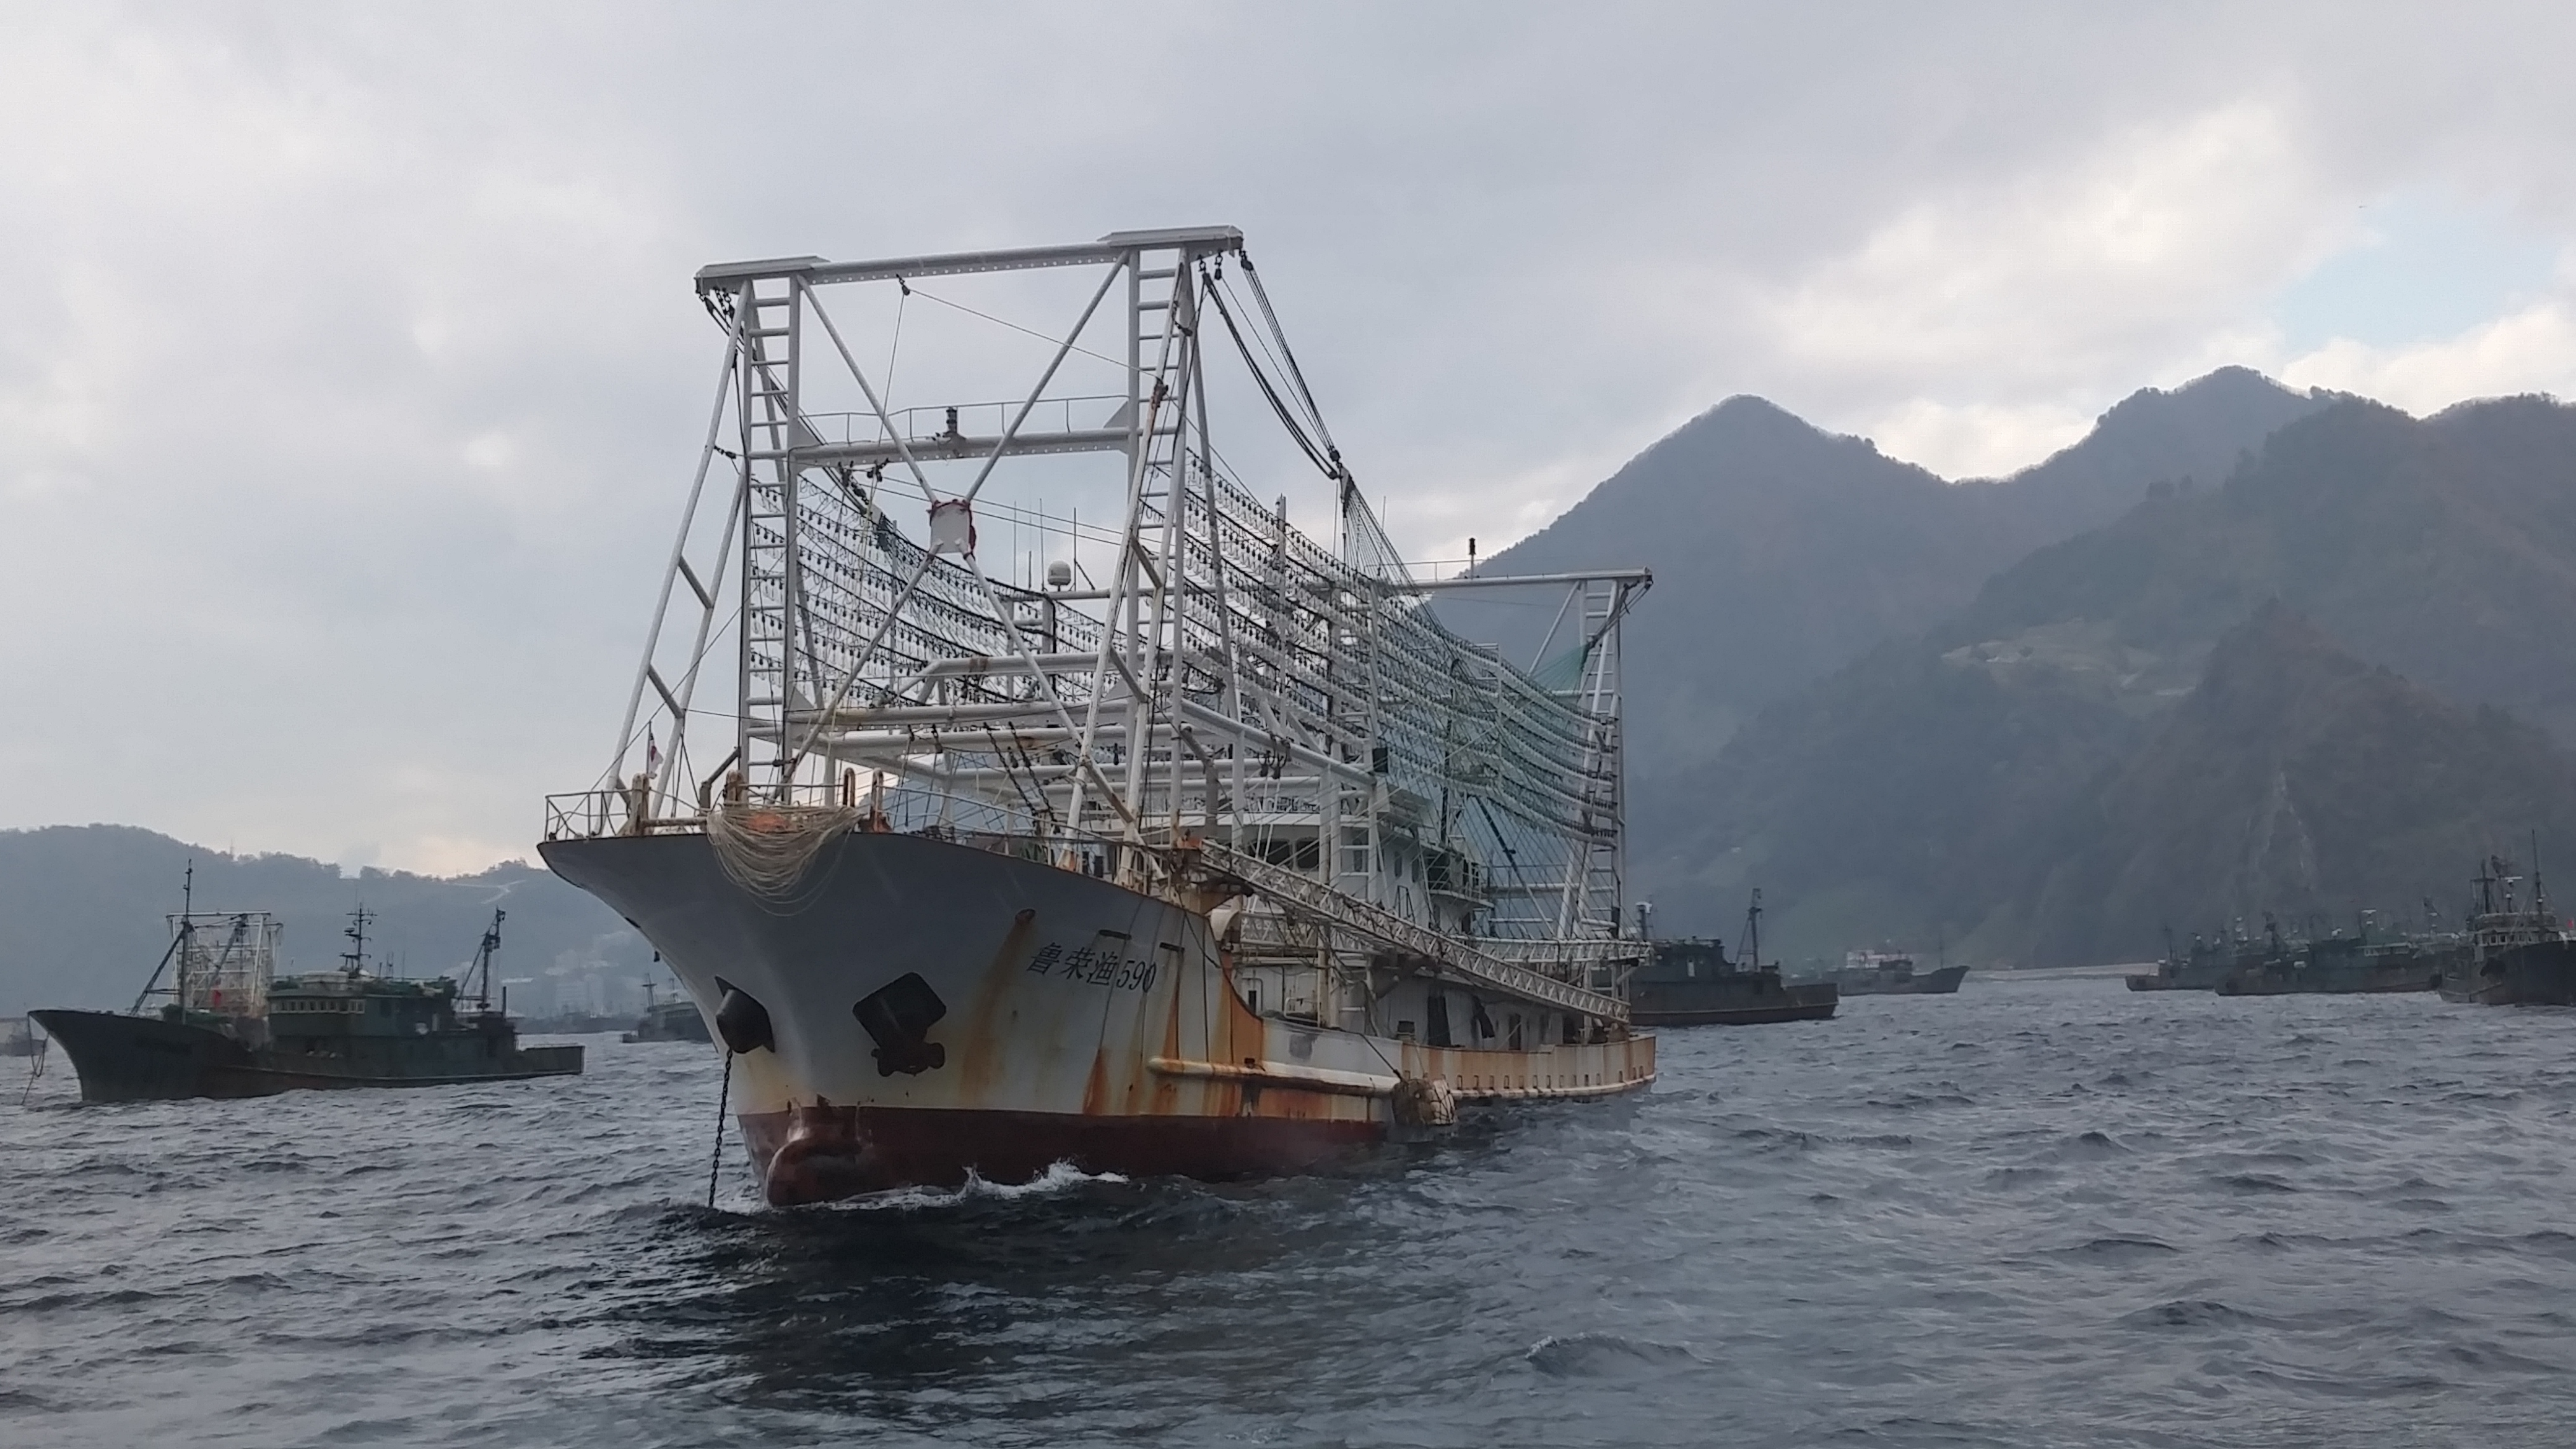 A Chinese squid ship sits in port off Ulleung Island in South Korean waters. South Korean Coast Guard authorities who have boarded ships on their way to North Korean fishing grounds have been shown fishing permits signed by North Korean authorities — in violation of UN sanctions. (South Korea Fisheries Agency/The Outlaw Ocean Project)